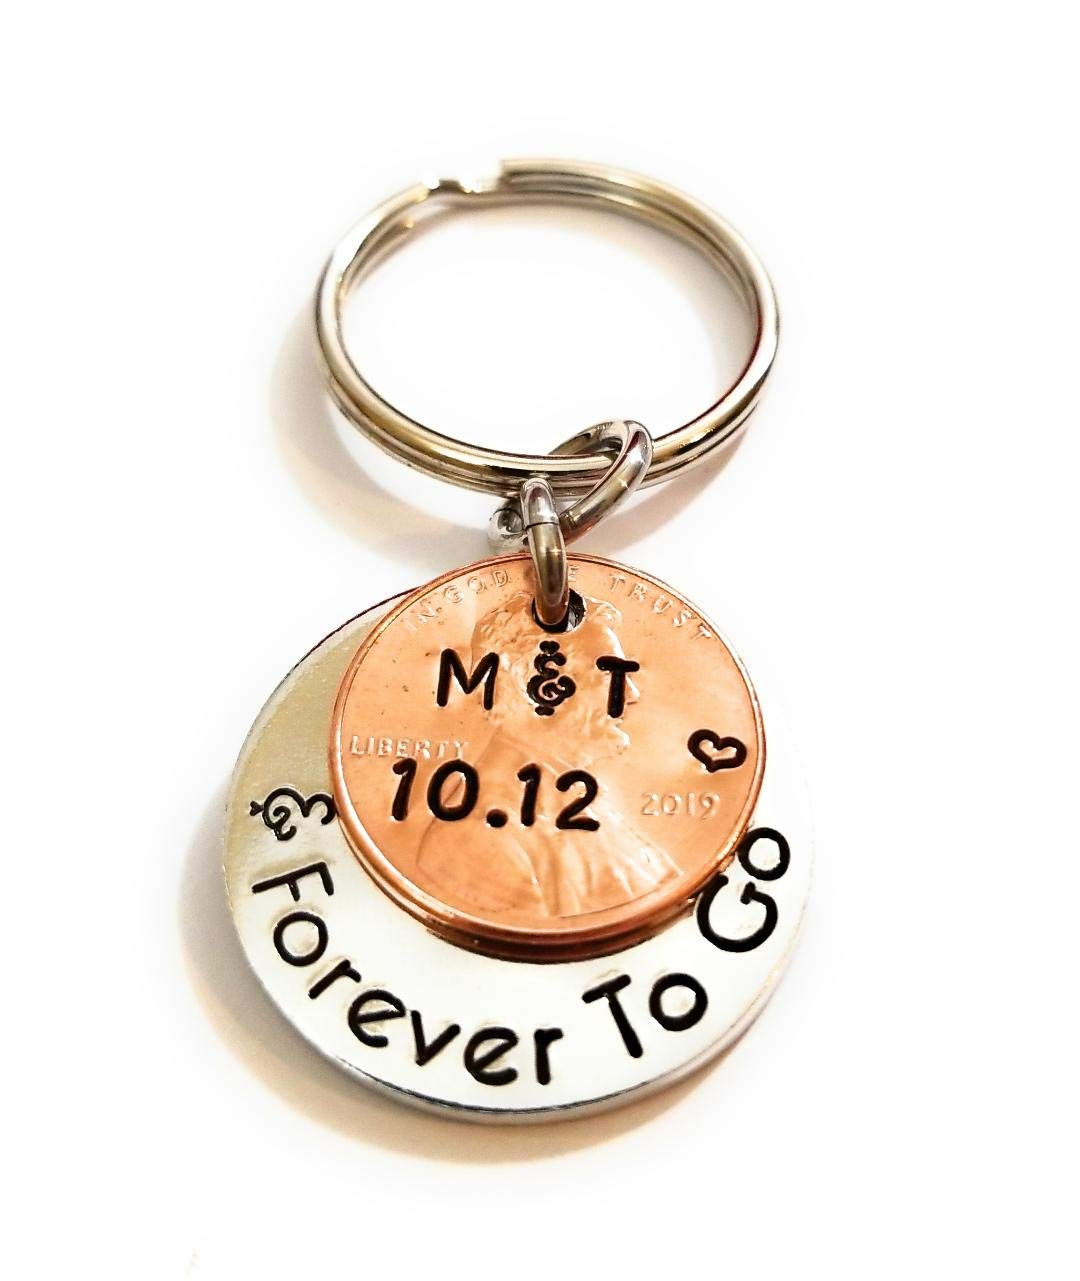 Personalized Penny Year and Forever To Go 1950-2020 Lucky Penny Key Chain Anniversary Date